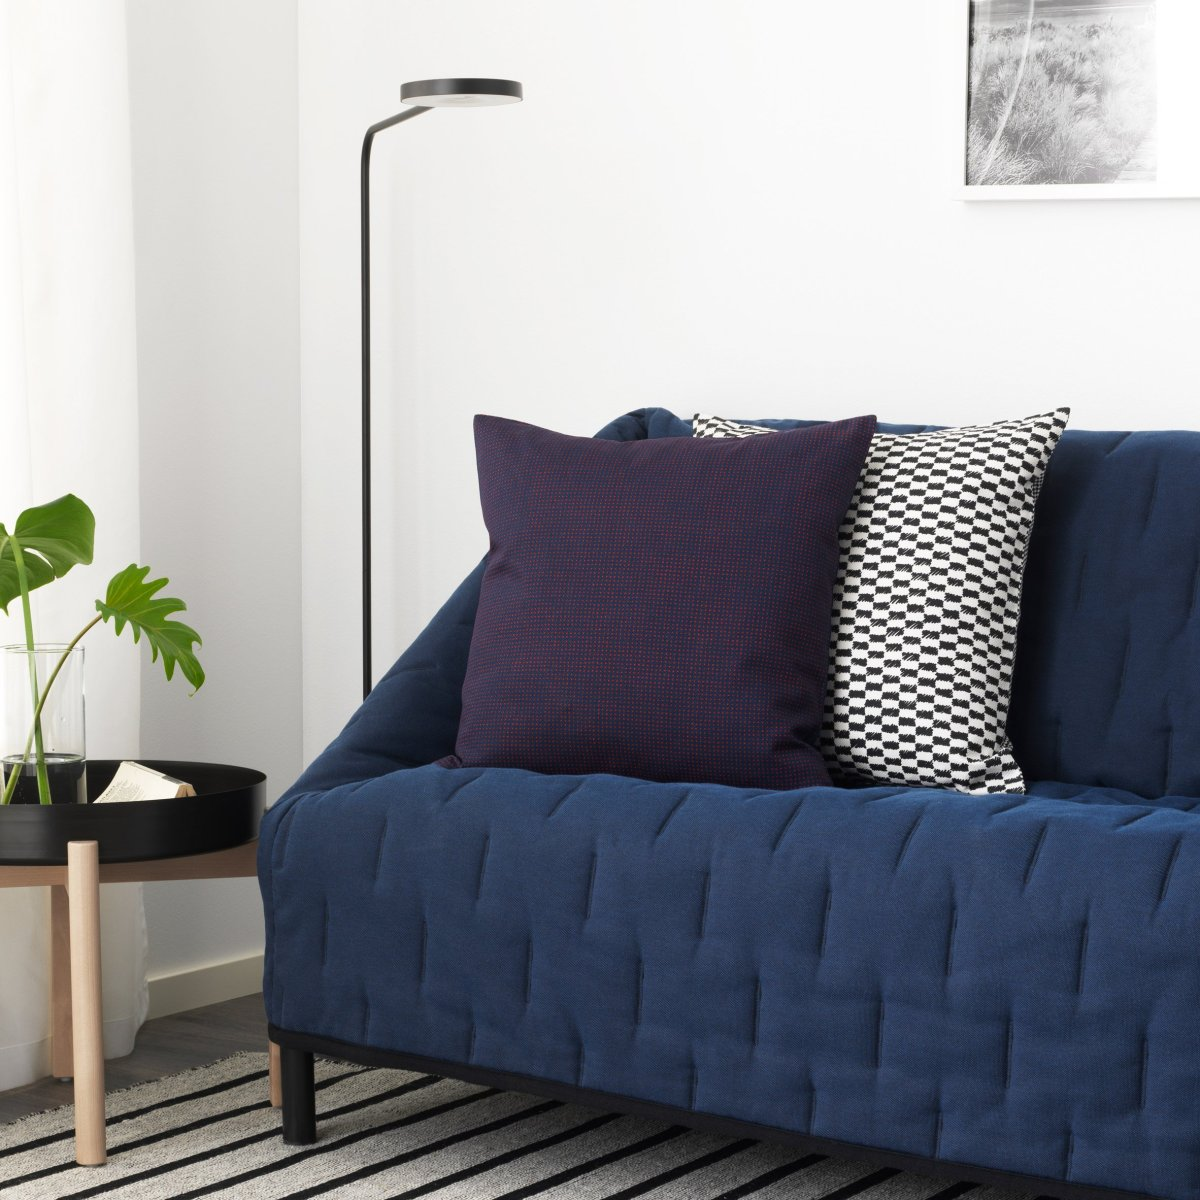 Ikea Bettsofa Ypperlig Ikea And Hay Reveal Full Collaborative Collection Eve